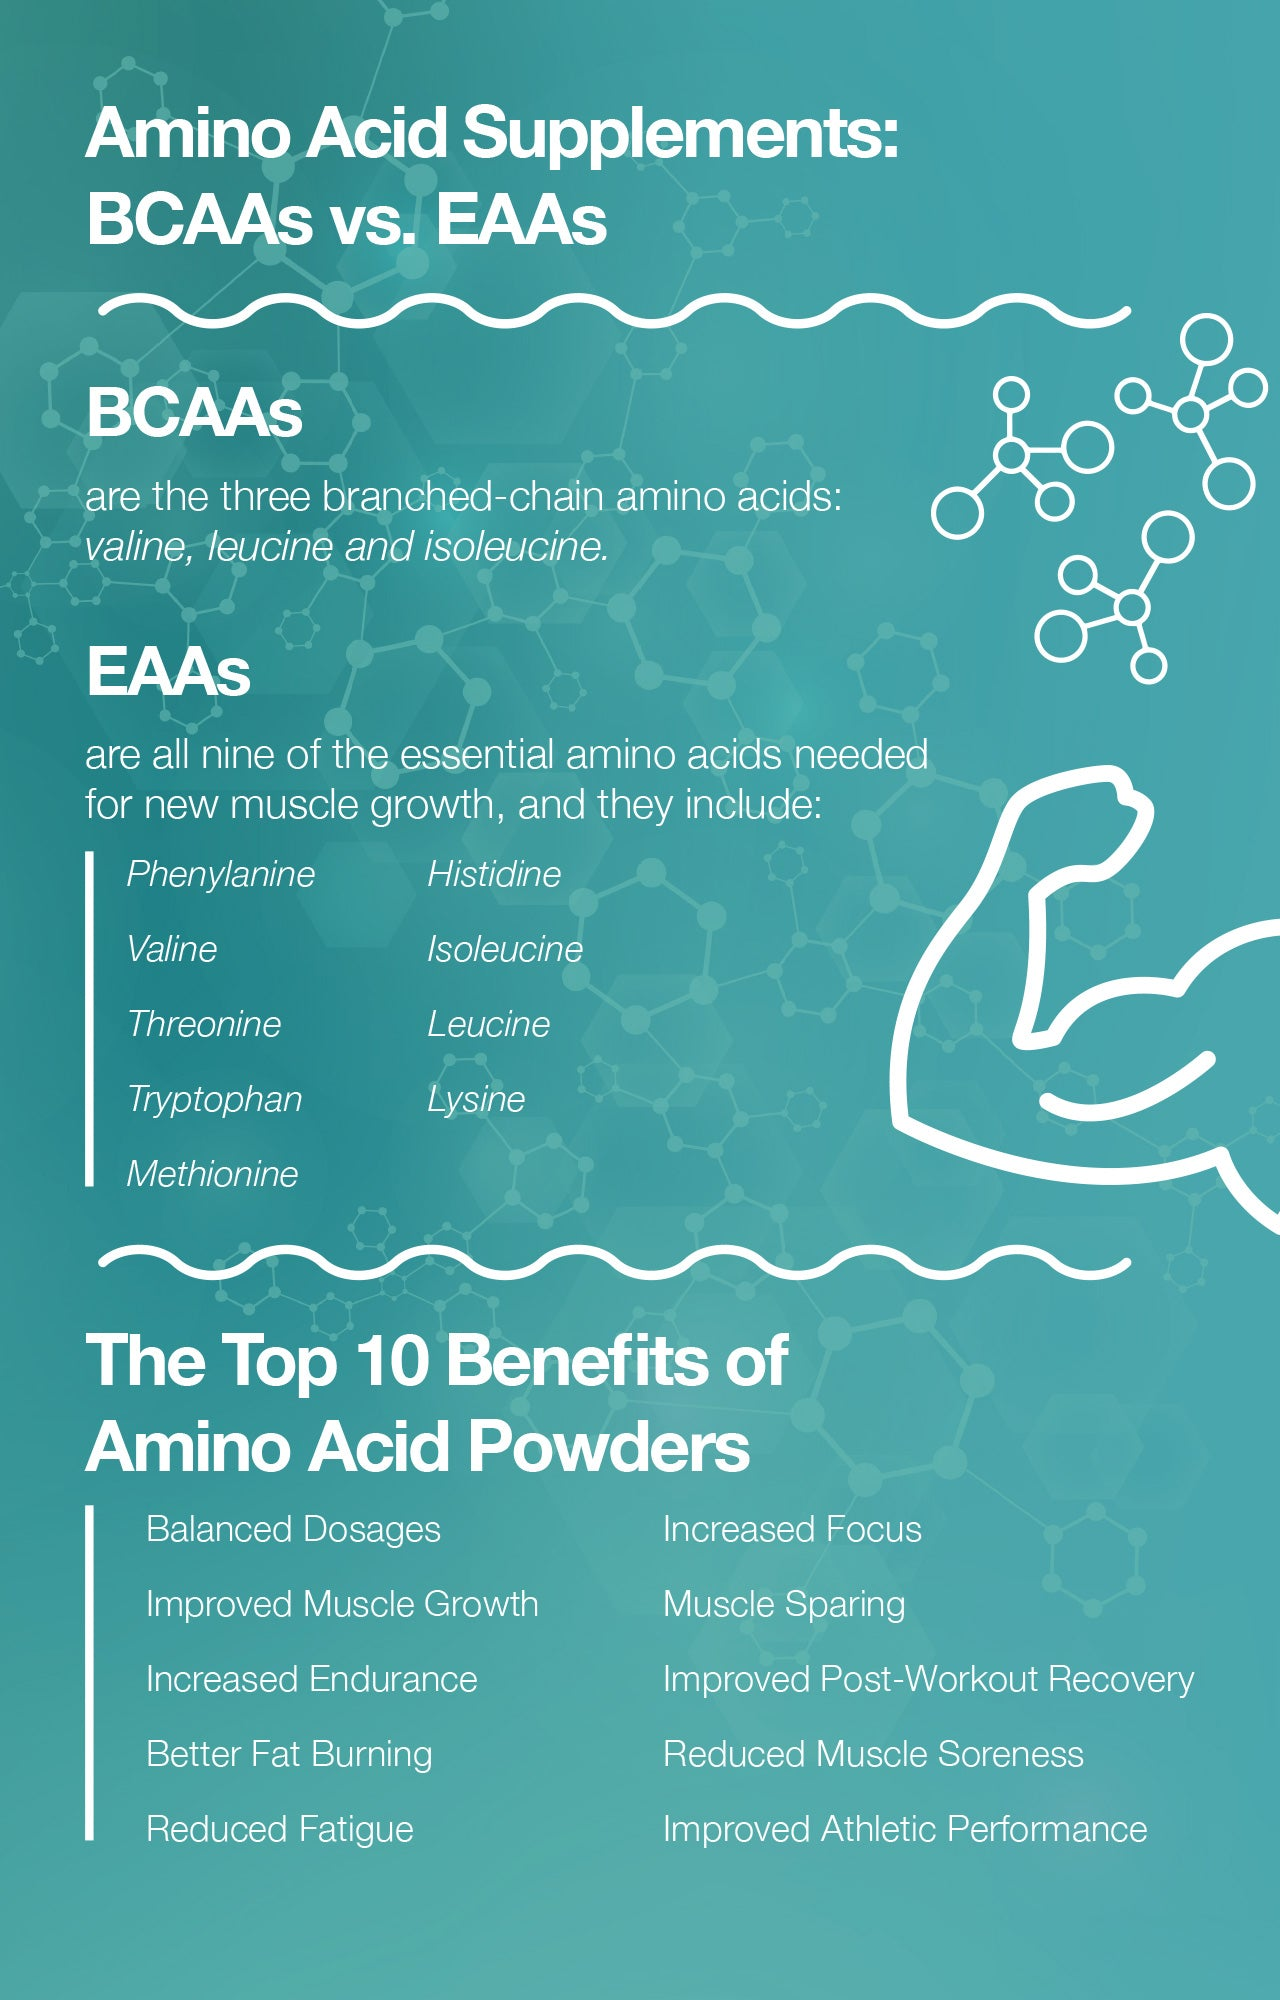 BCAA and EAA supplements compared